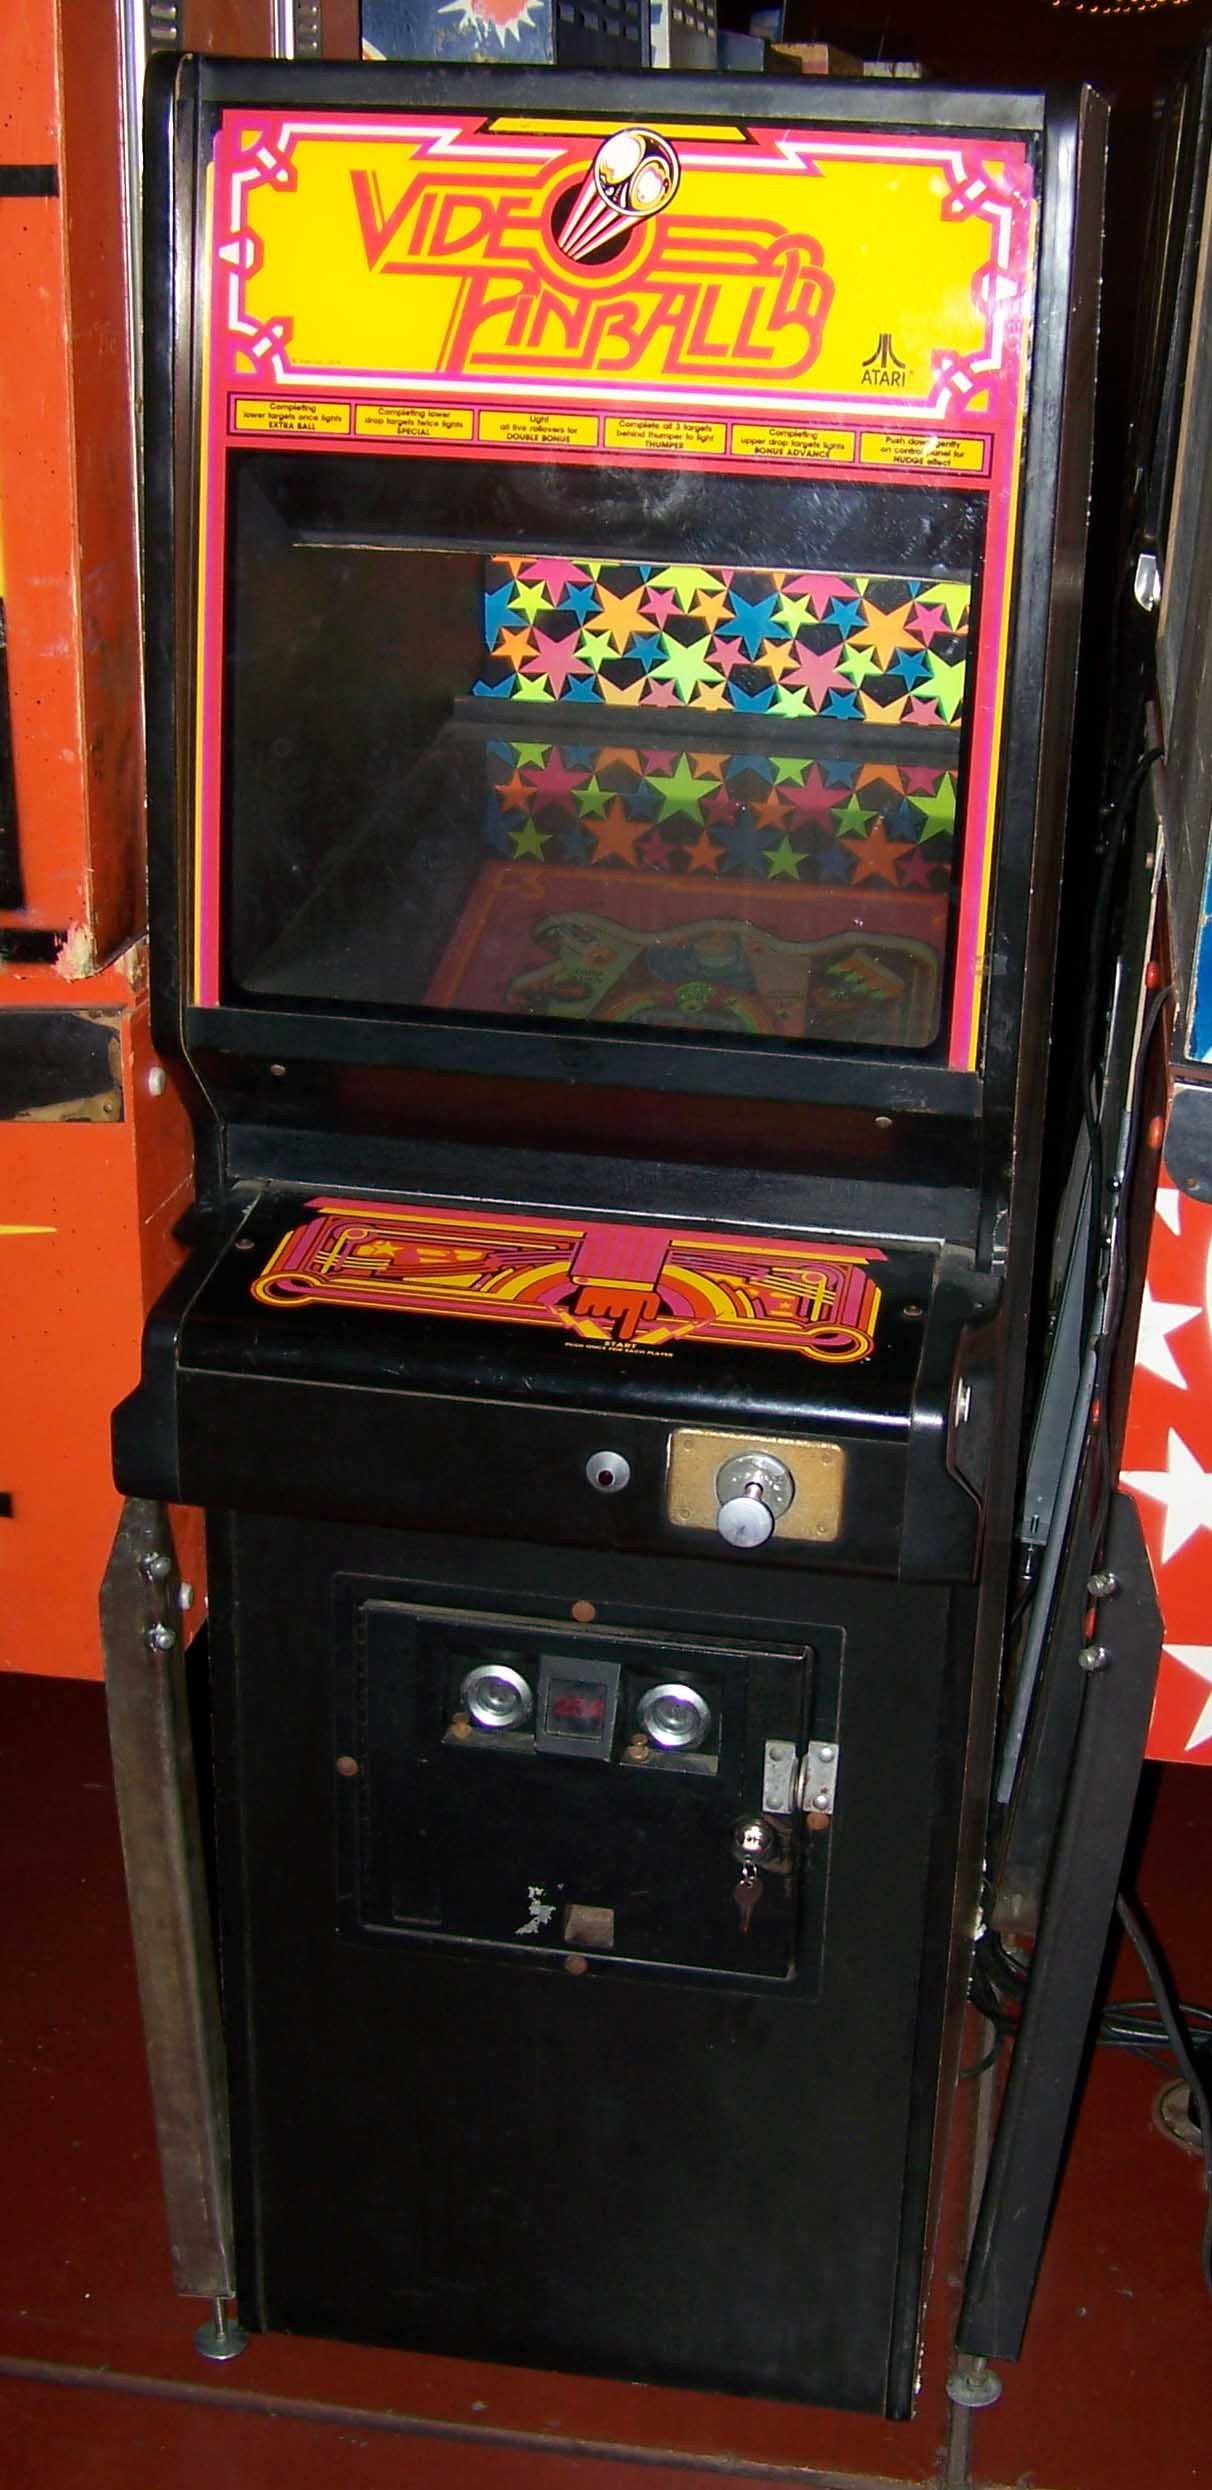 Video Pinball by Atari in 1979 - A hybrid of a video game and a pinball machine